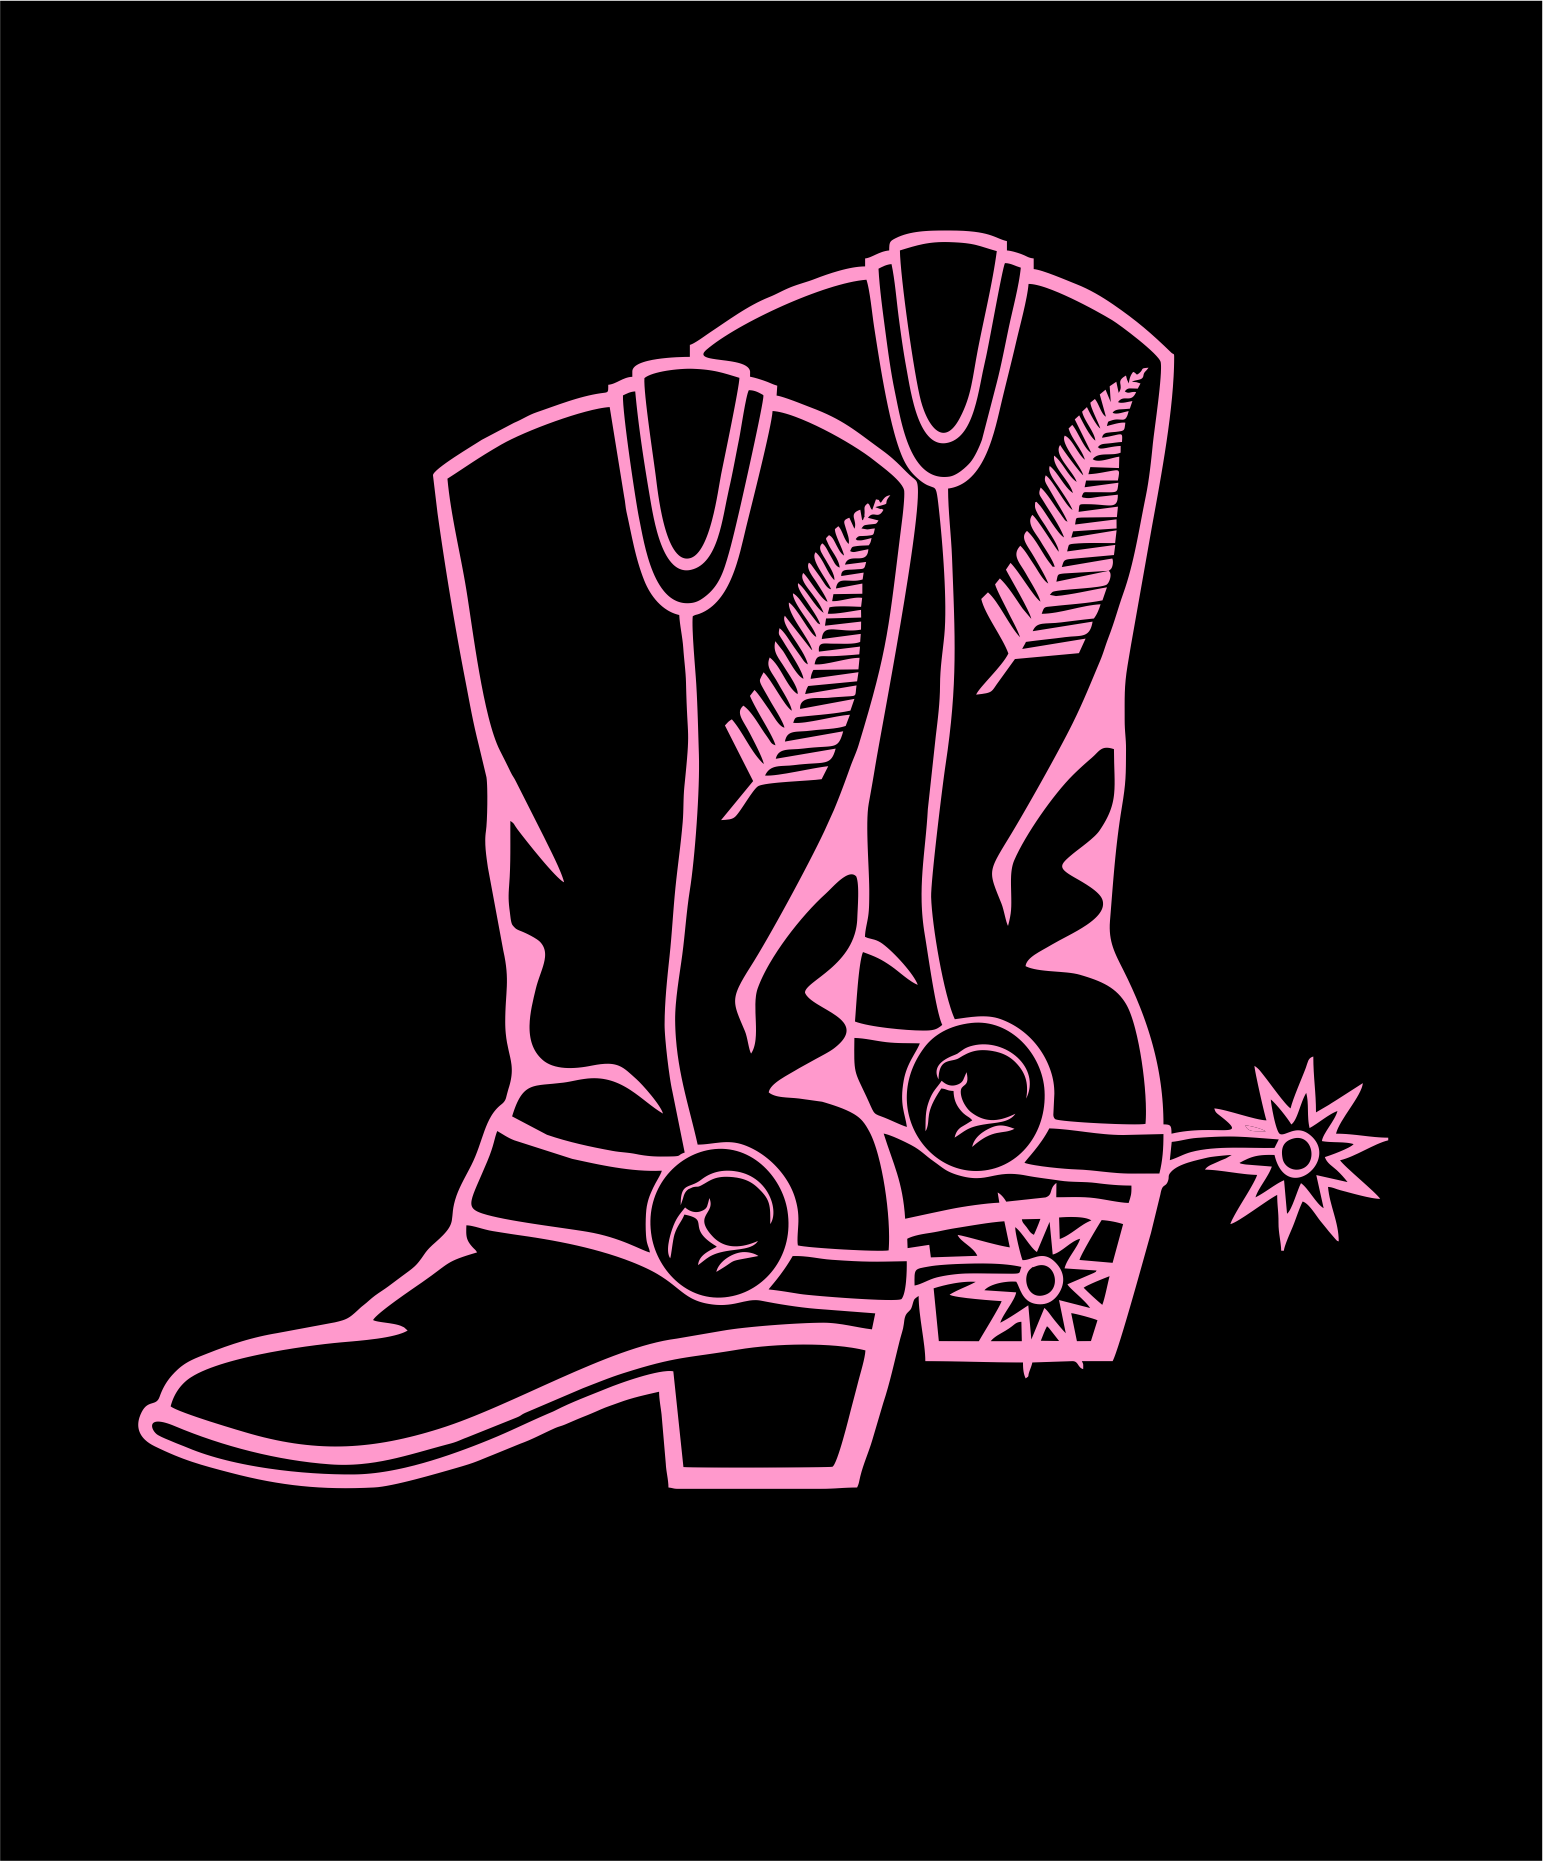 Custom made cow boy boot graphic for a pocket size image on the front of a customers T-shirt